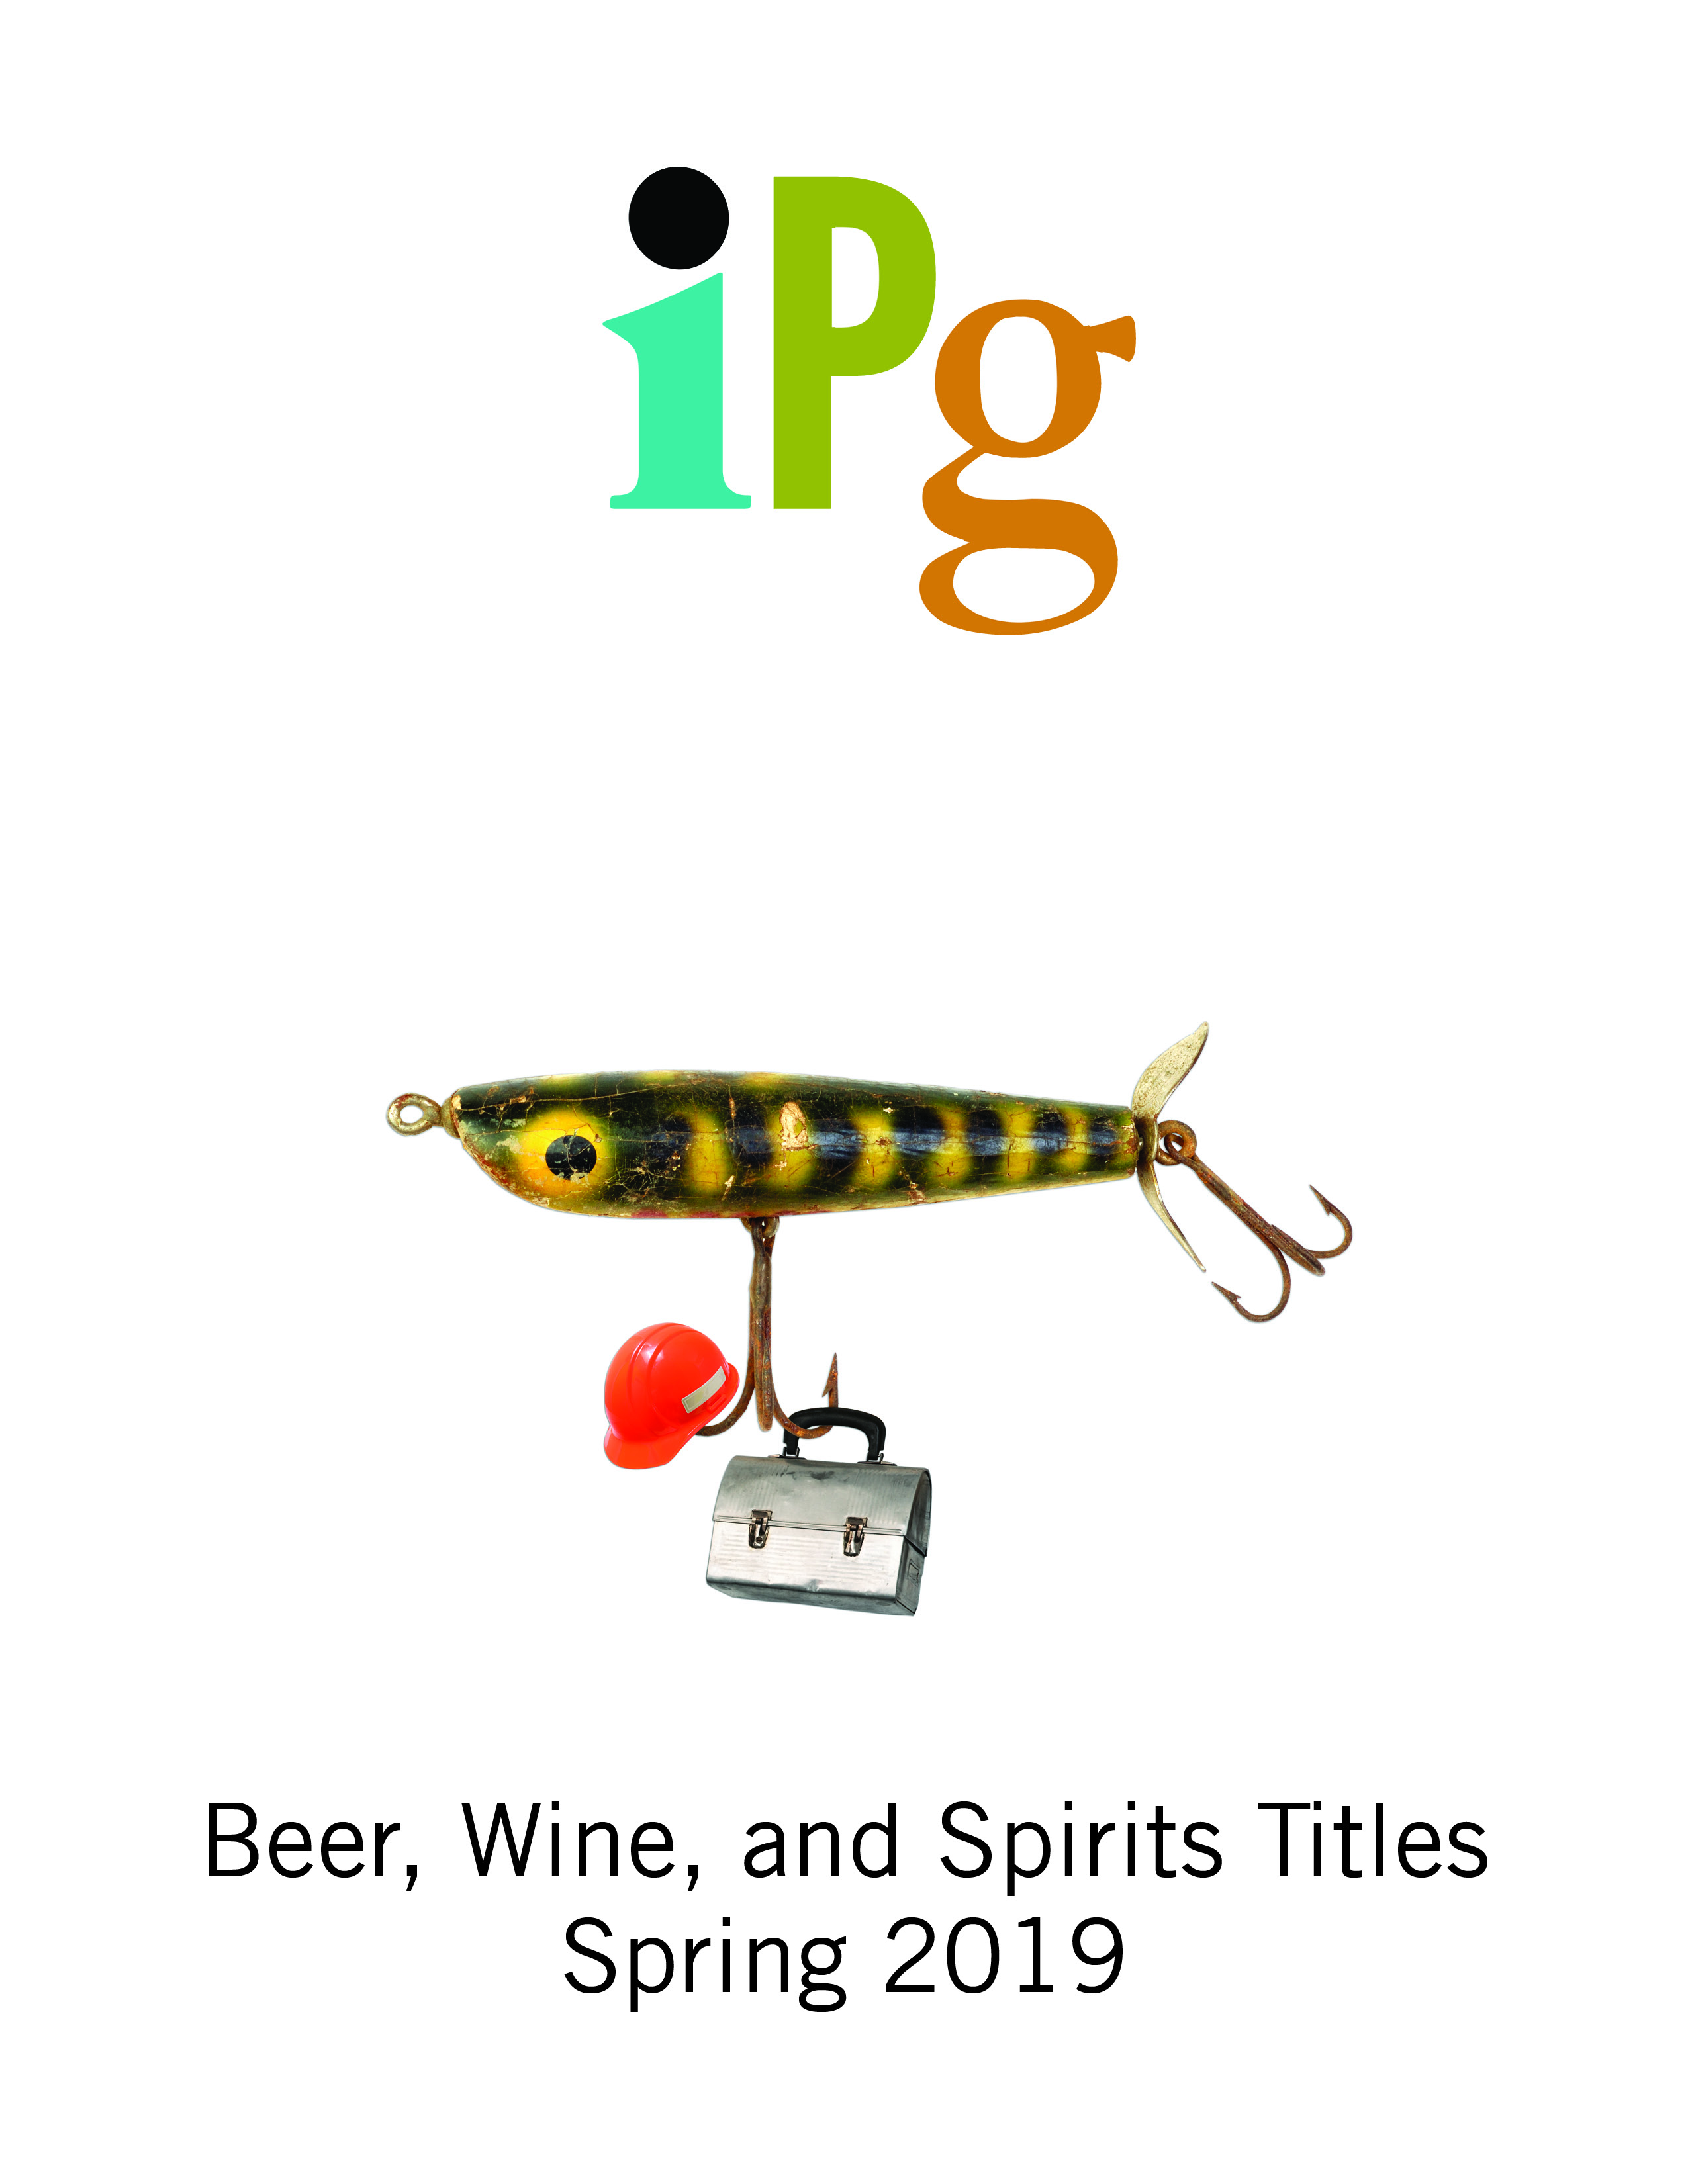 Beer, Wine and Spirits Titles